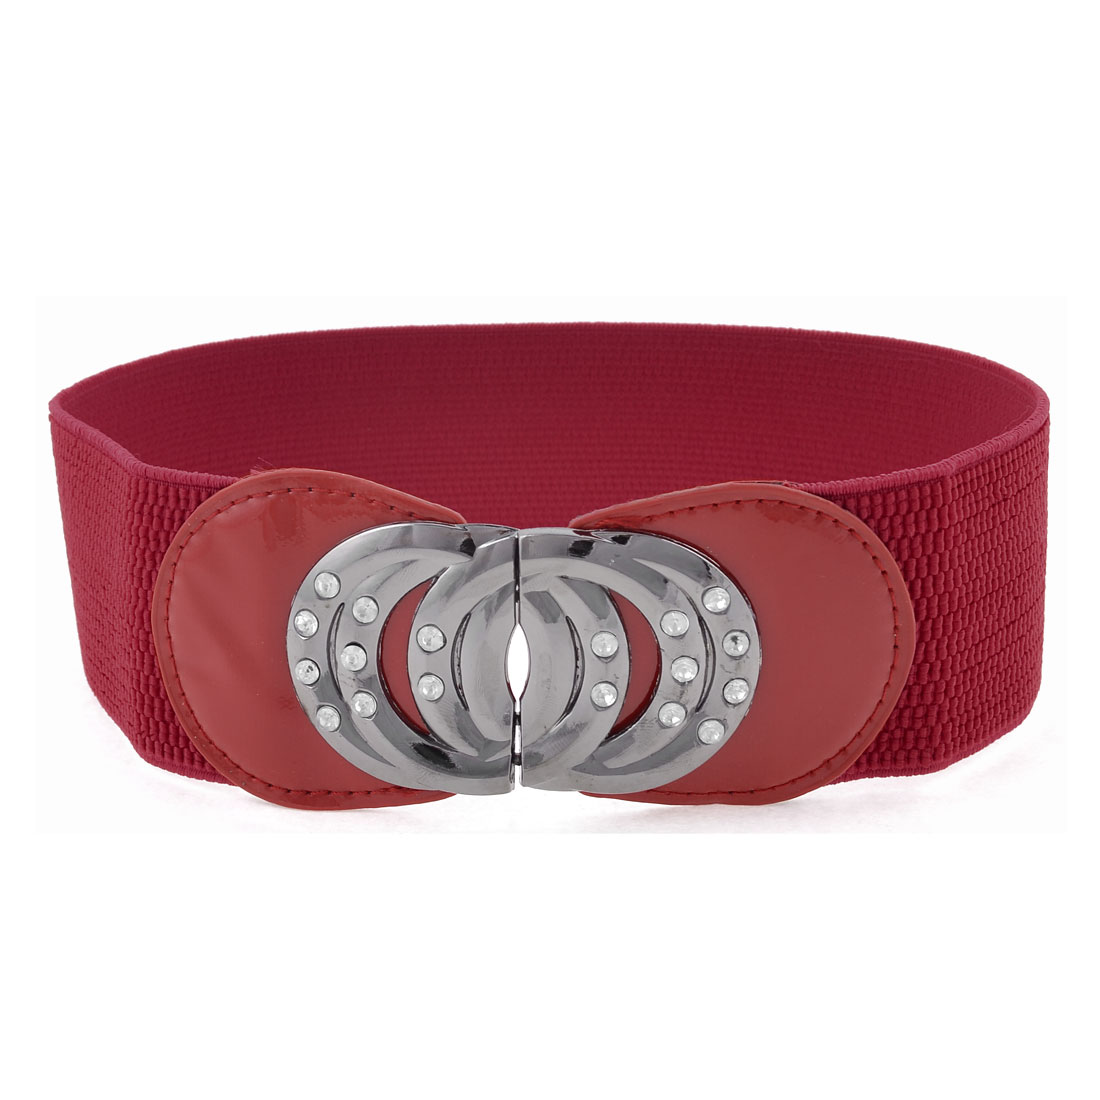 Metal Interlock Buckle 5.9cm Width Stretchy Textured Cinch Belt Red for Women